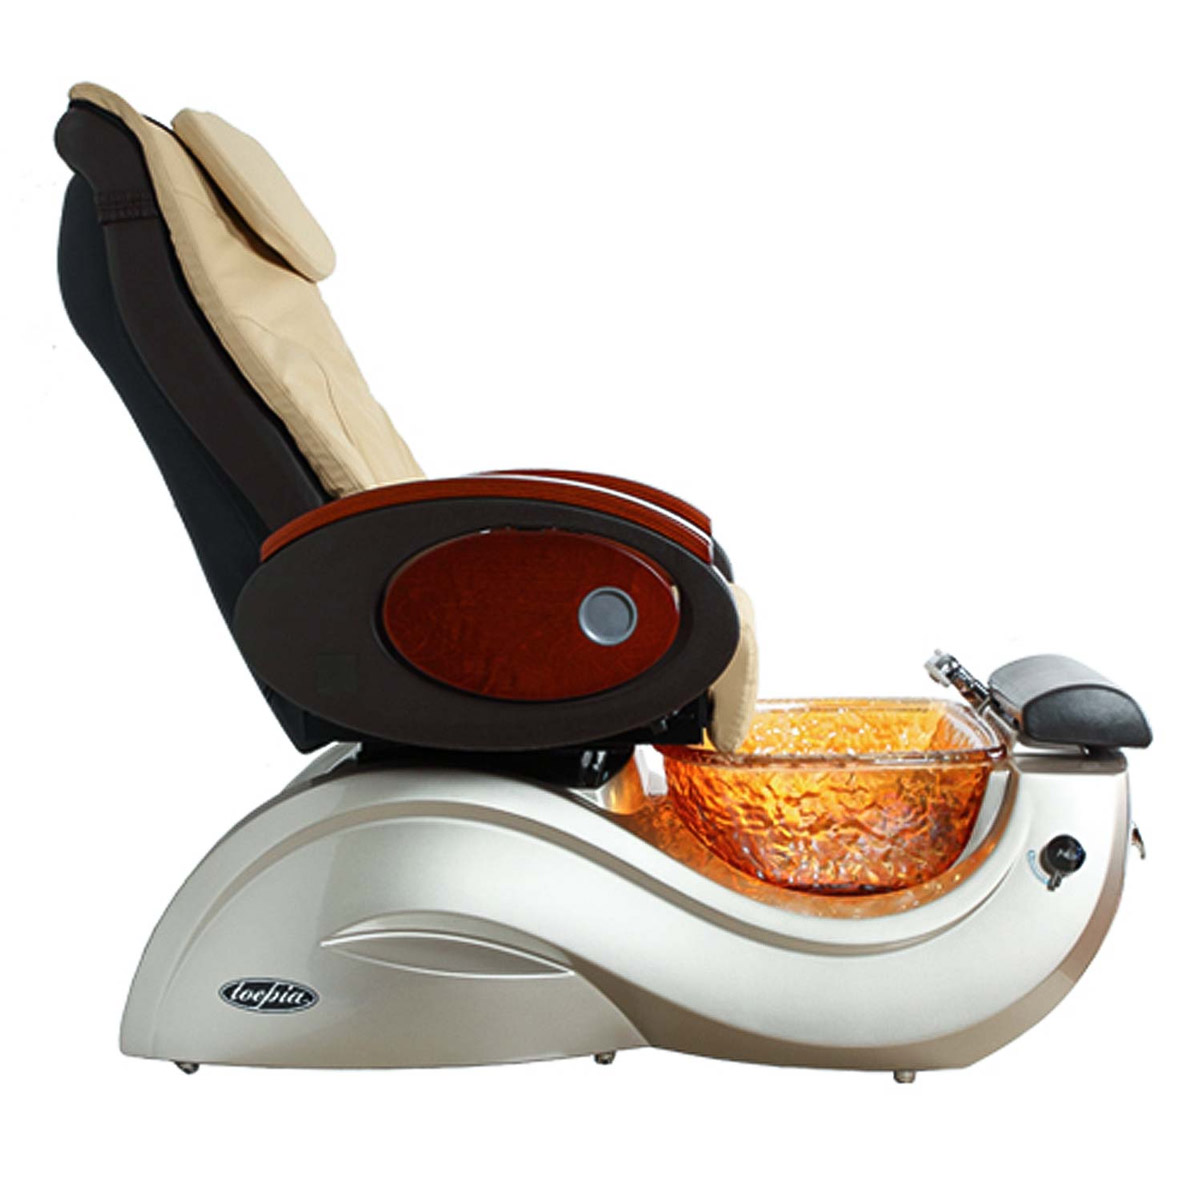 Toepia GX Pipeless Pedicure Spa Chair w/Vented Option alternative product image 10